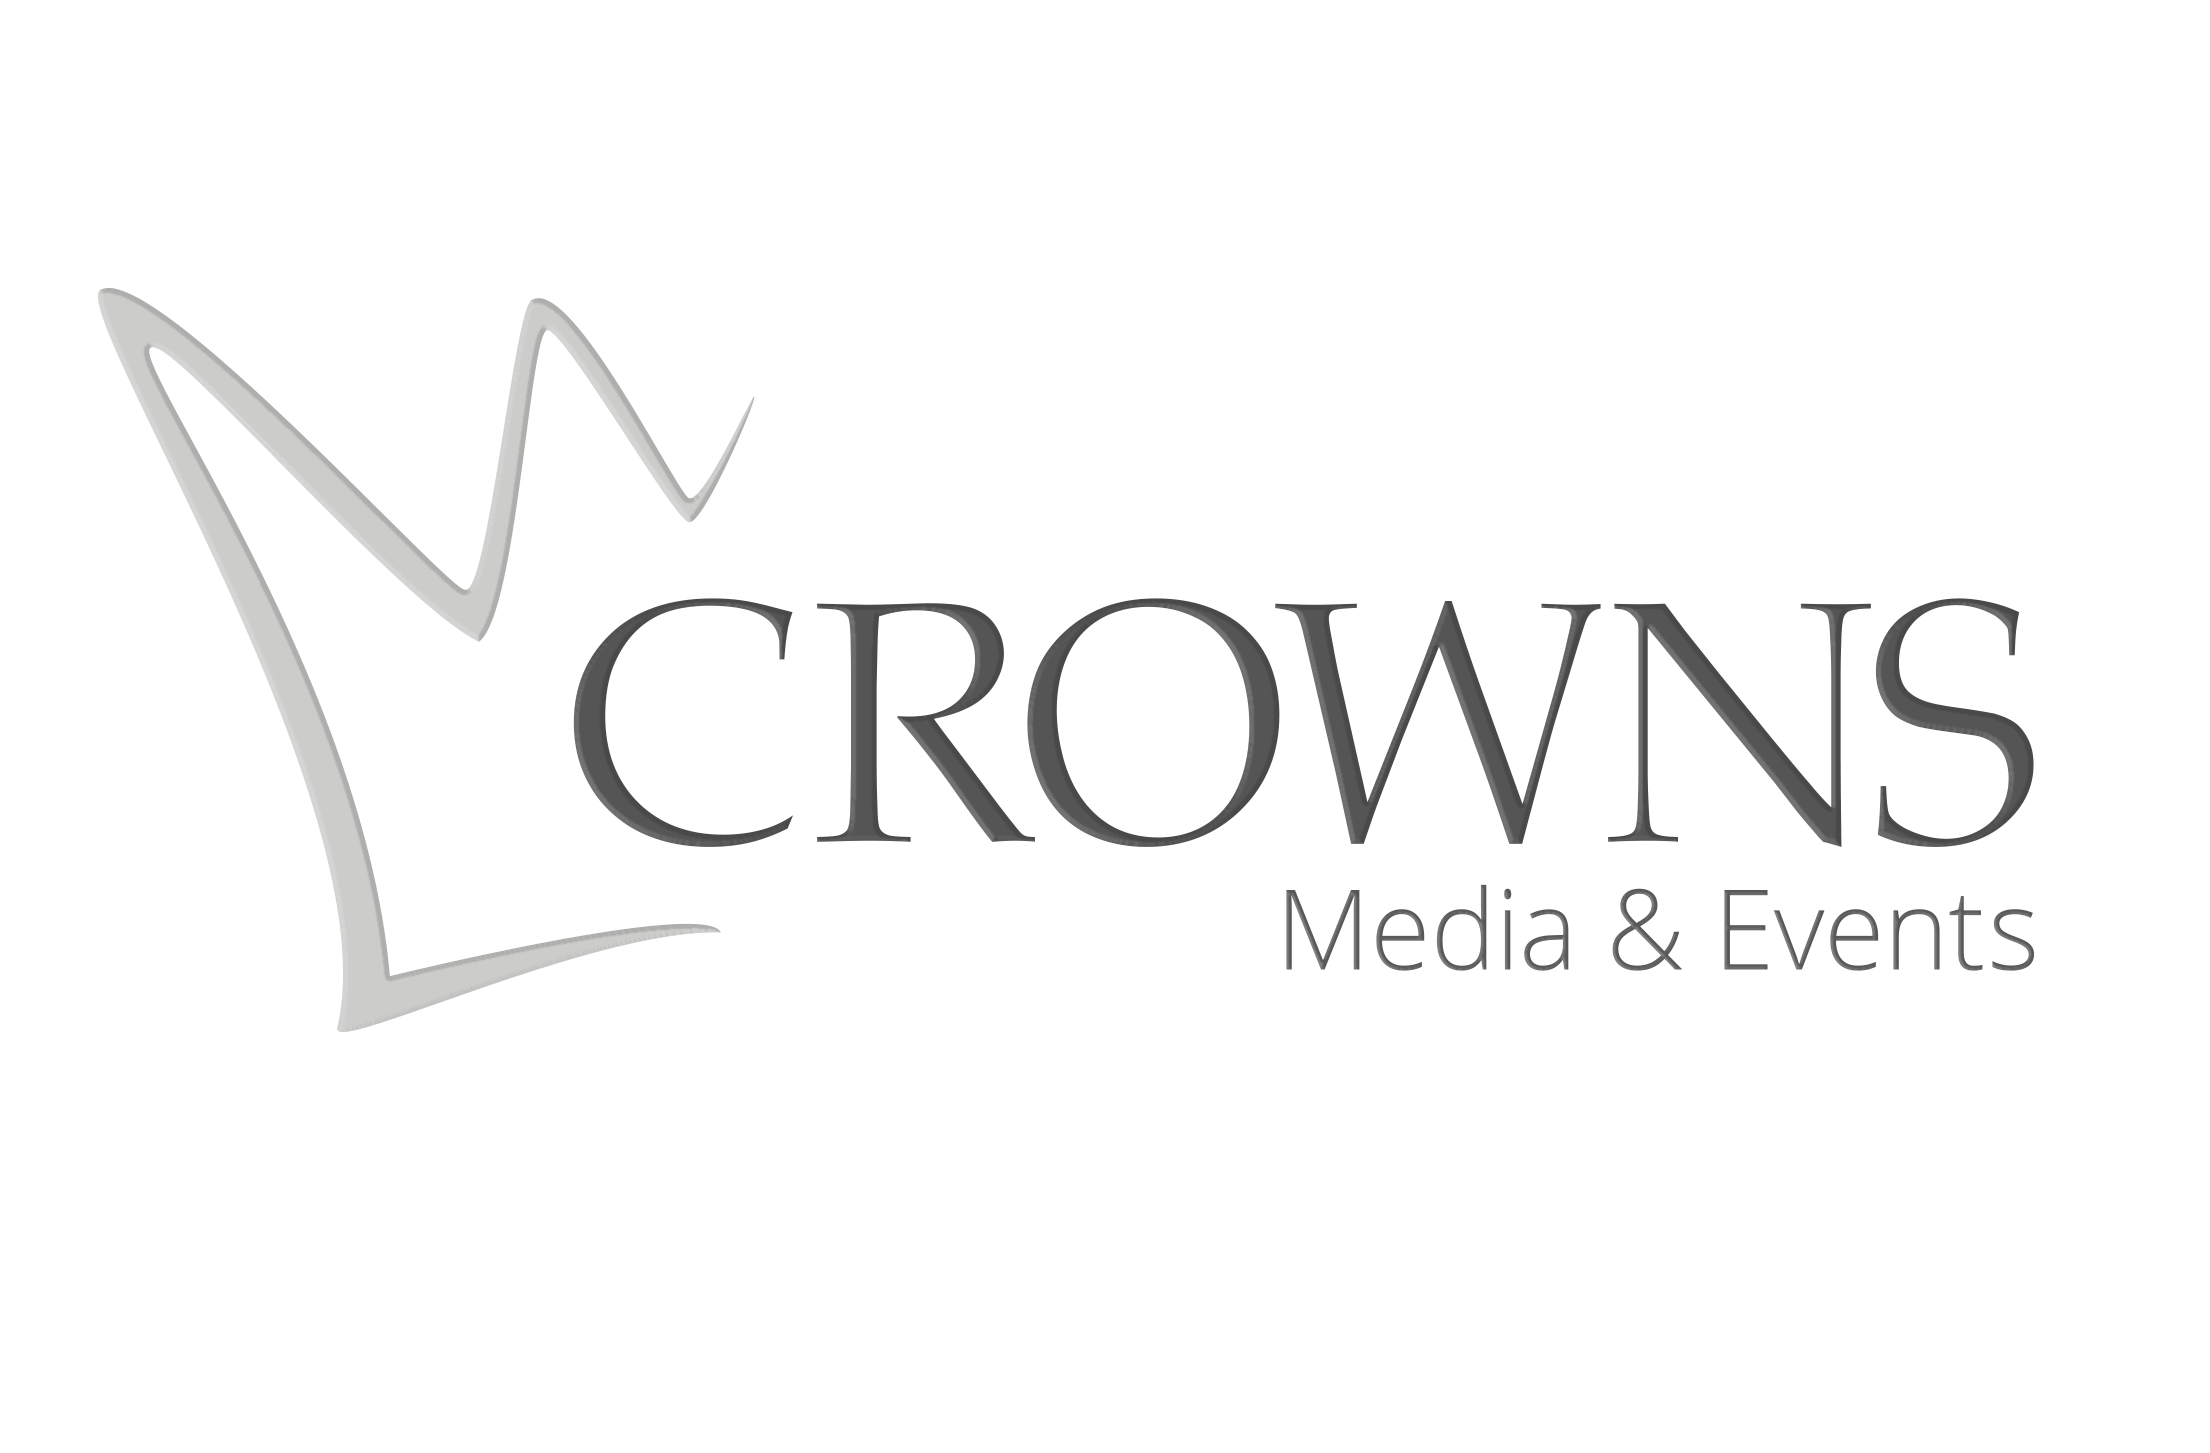 CROWNS - Media & Events